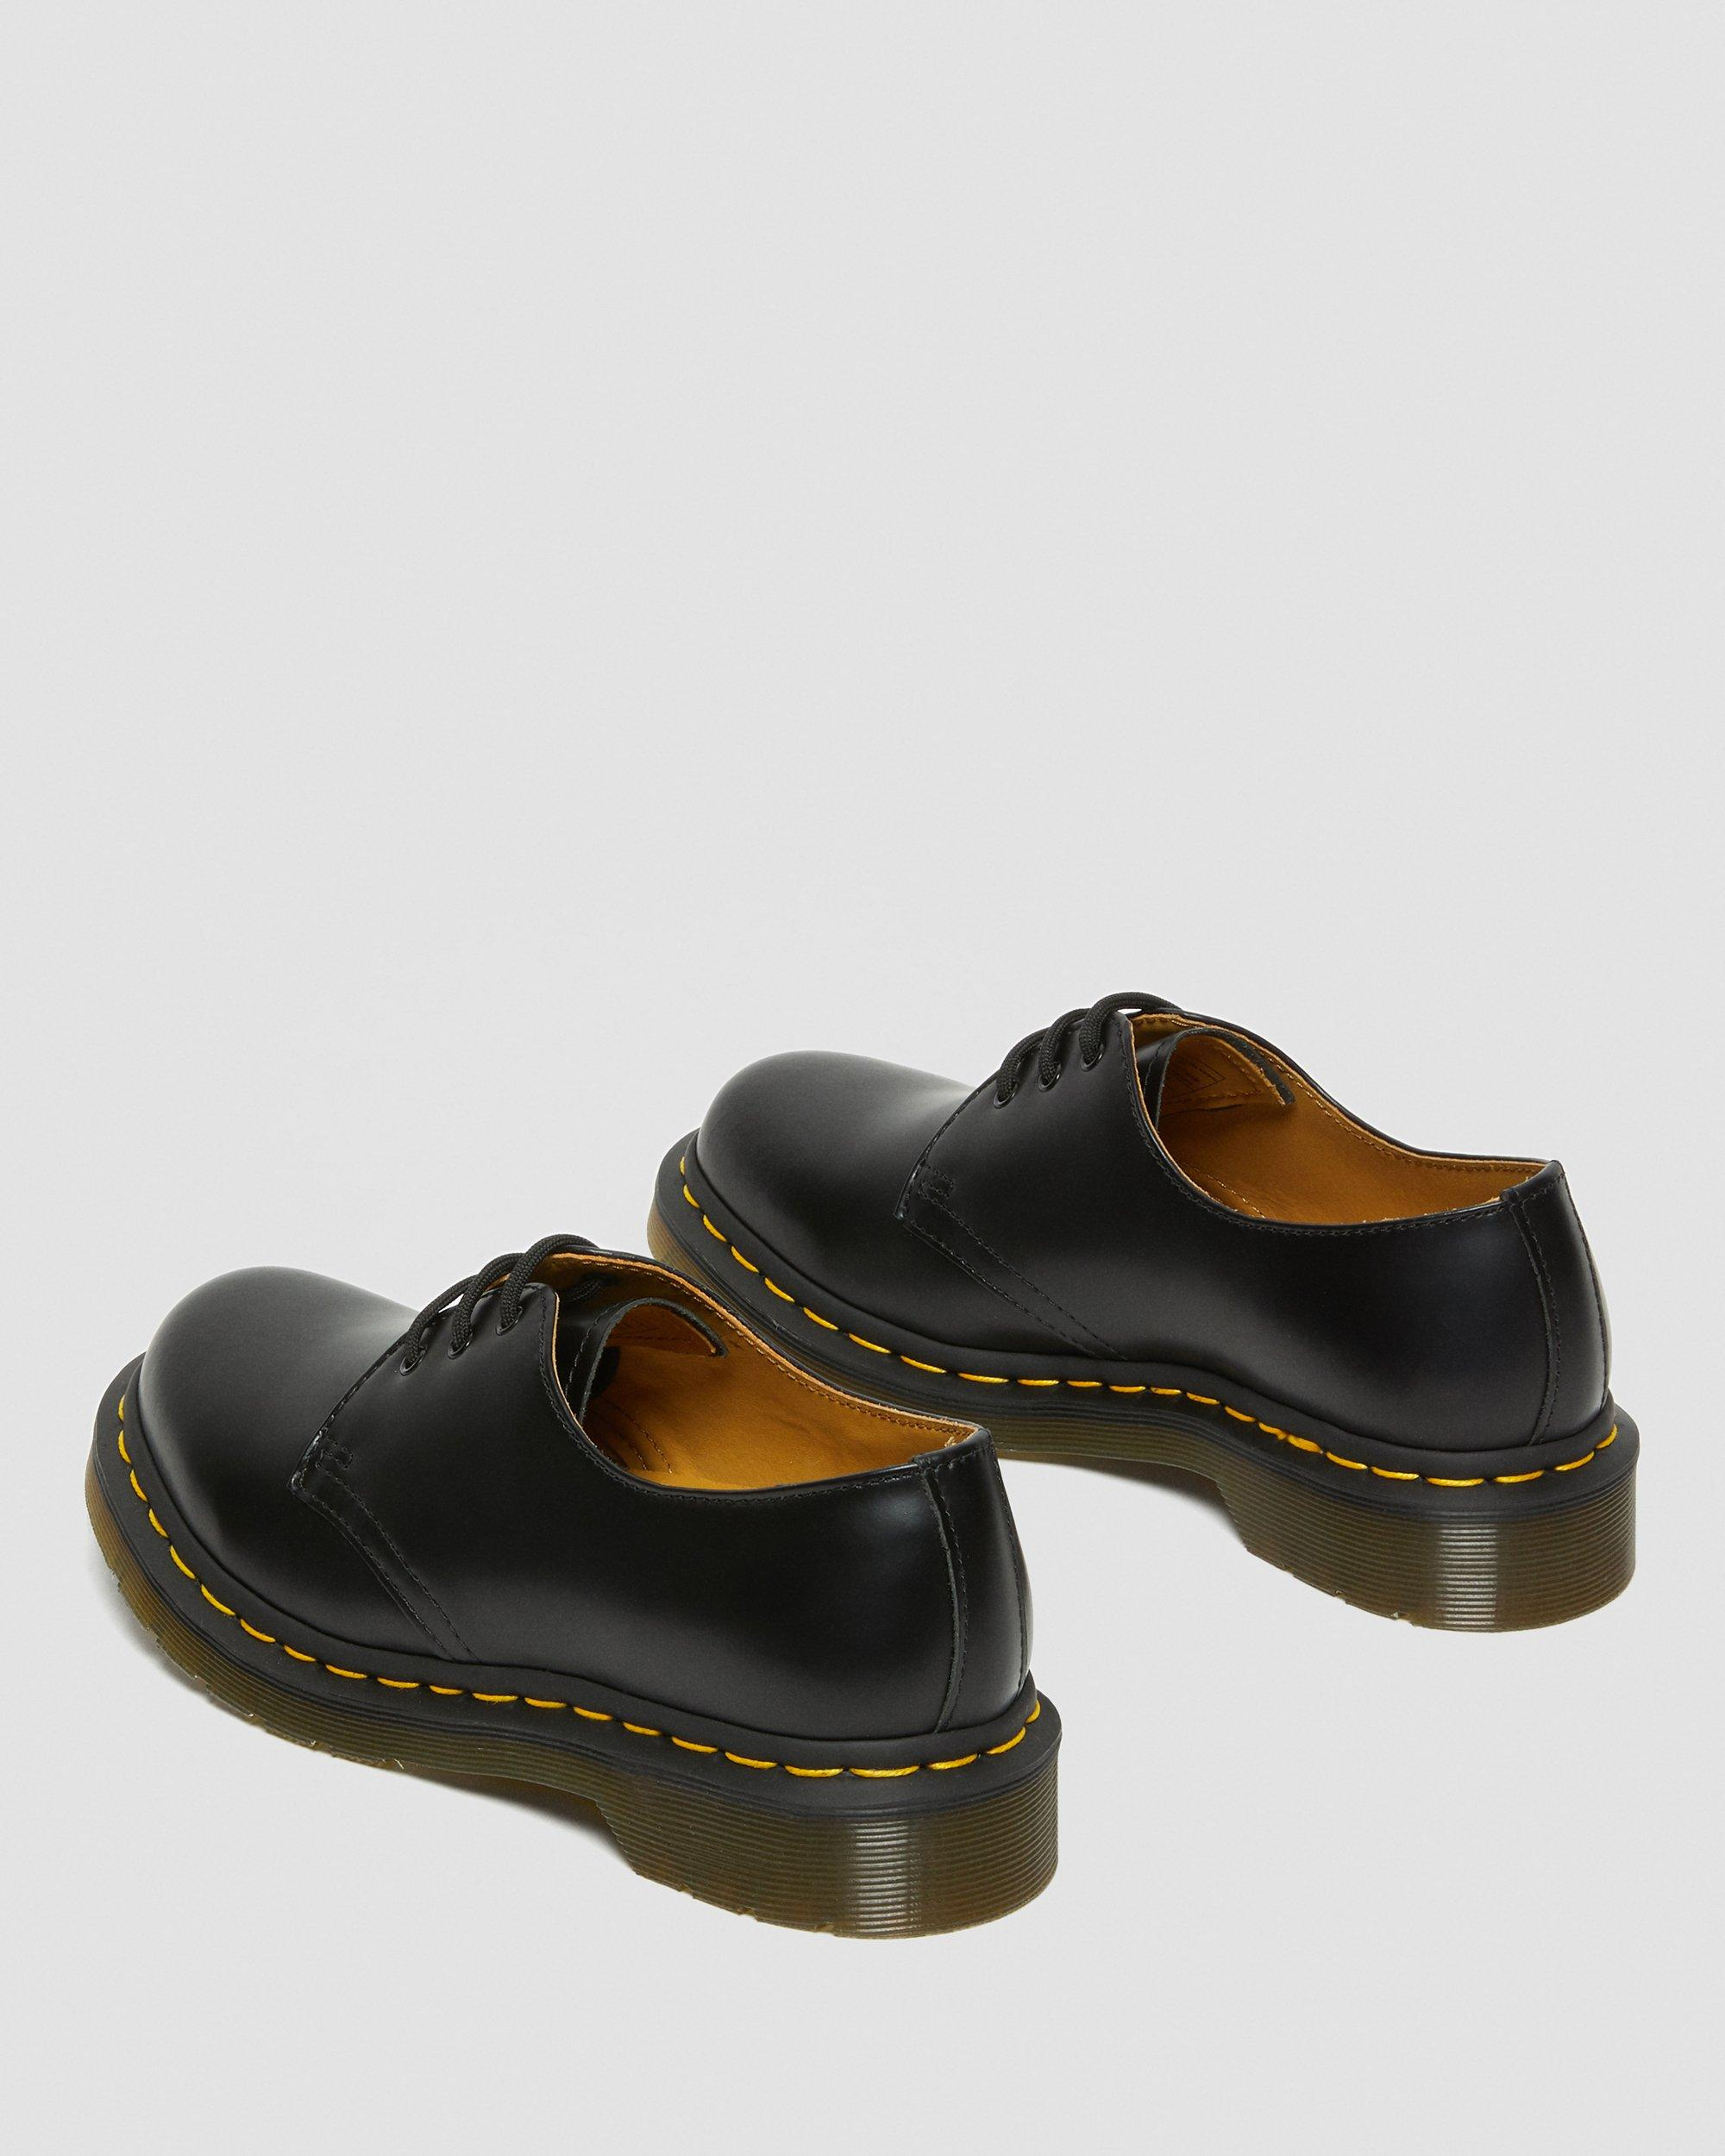 dr martens womens | Page 2 | The Walking Company